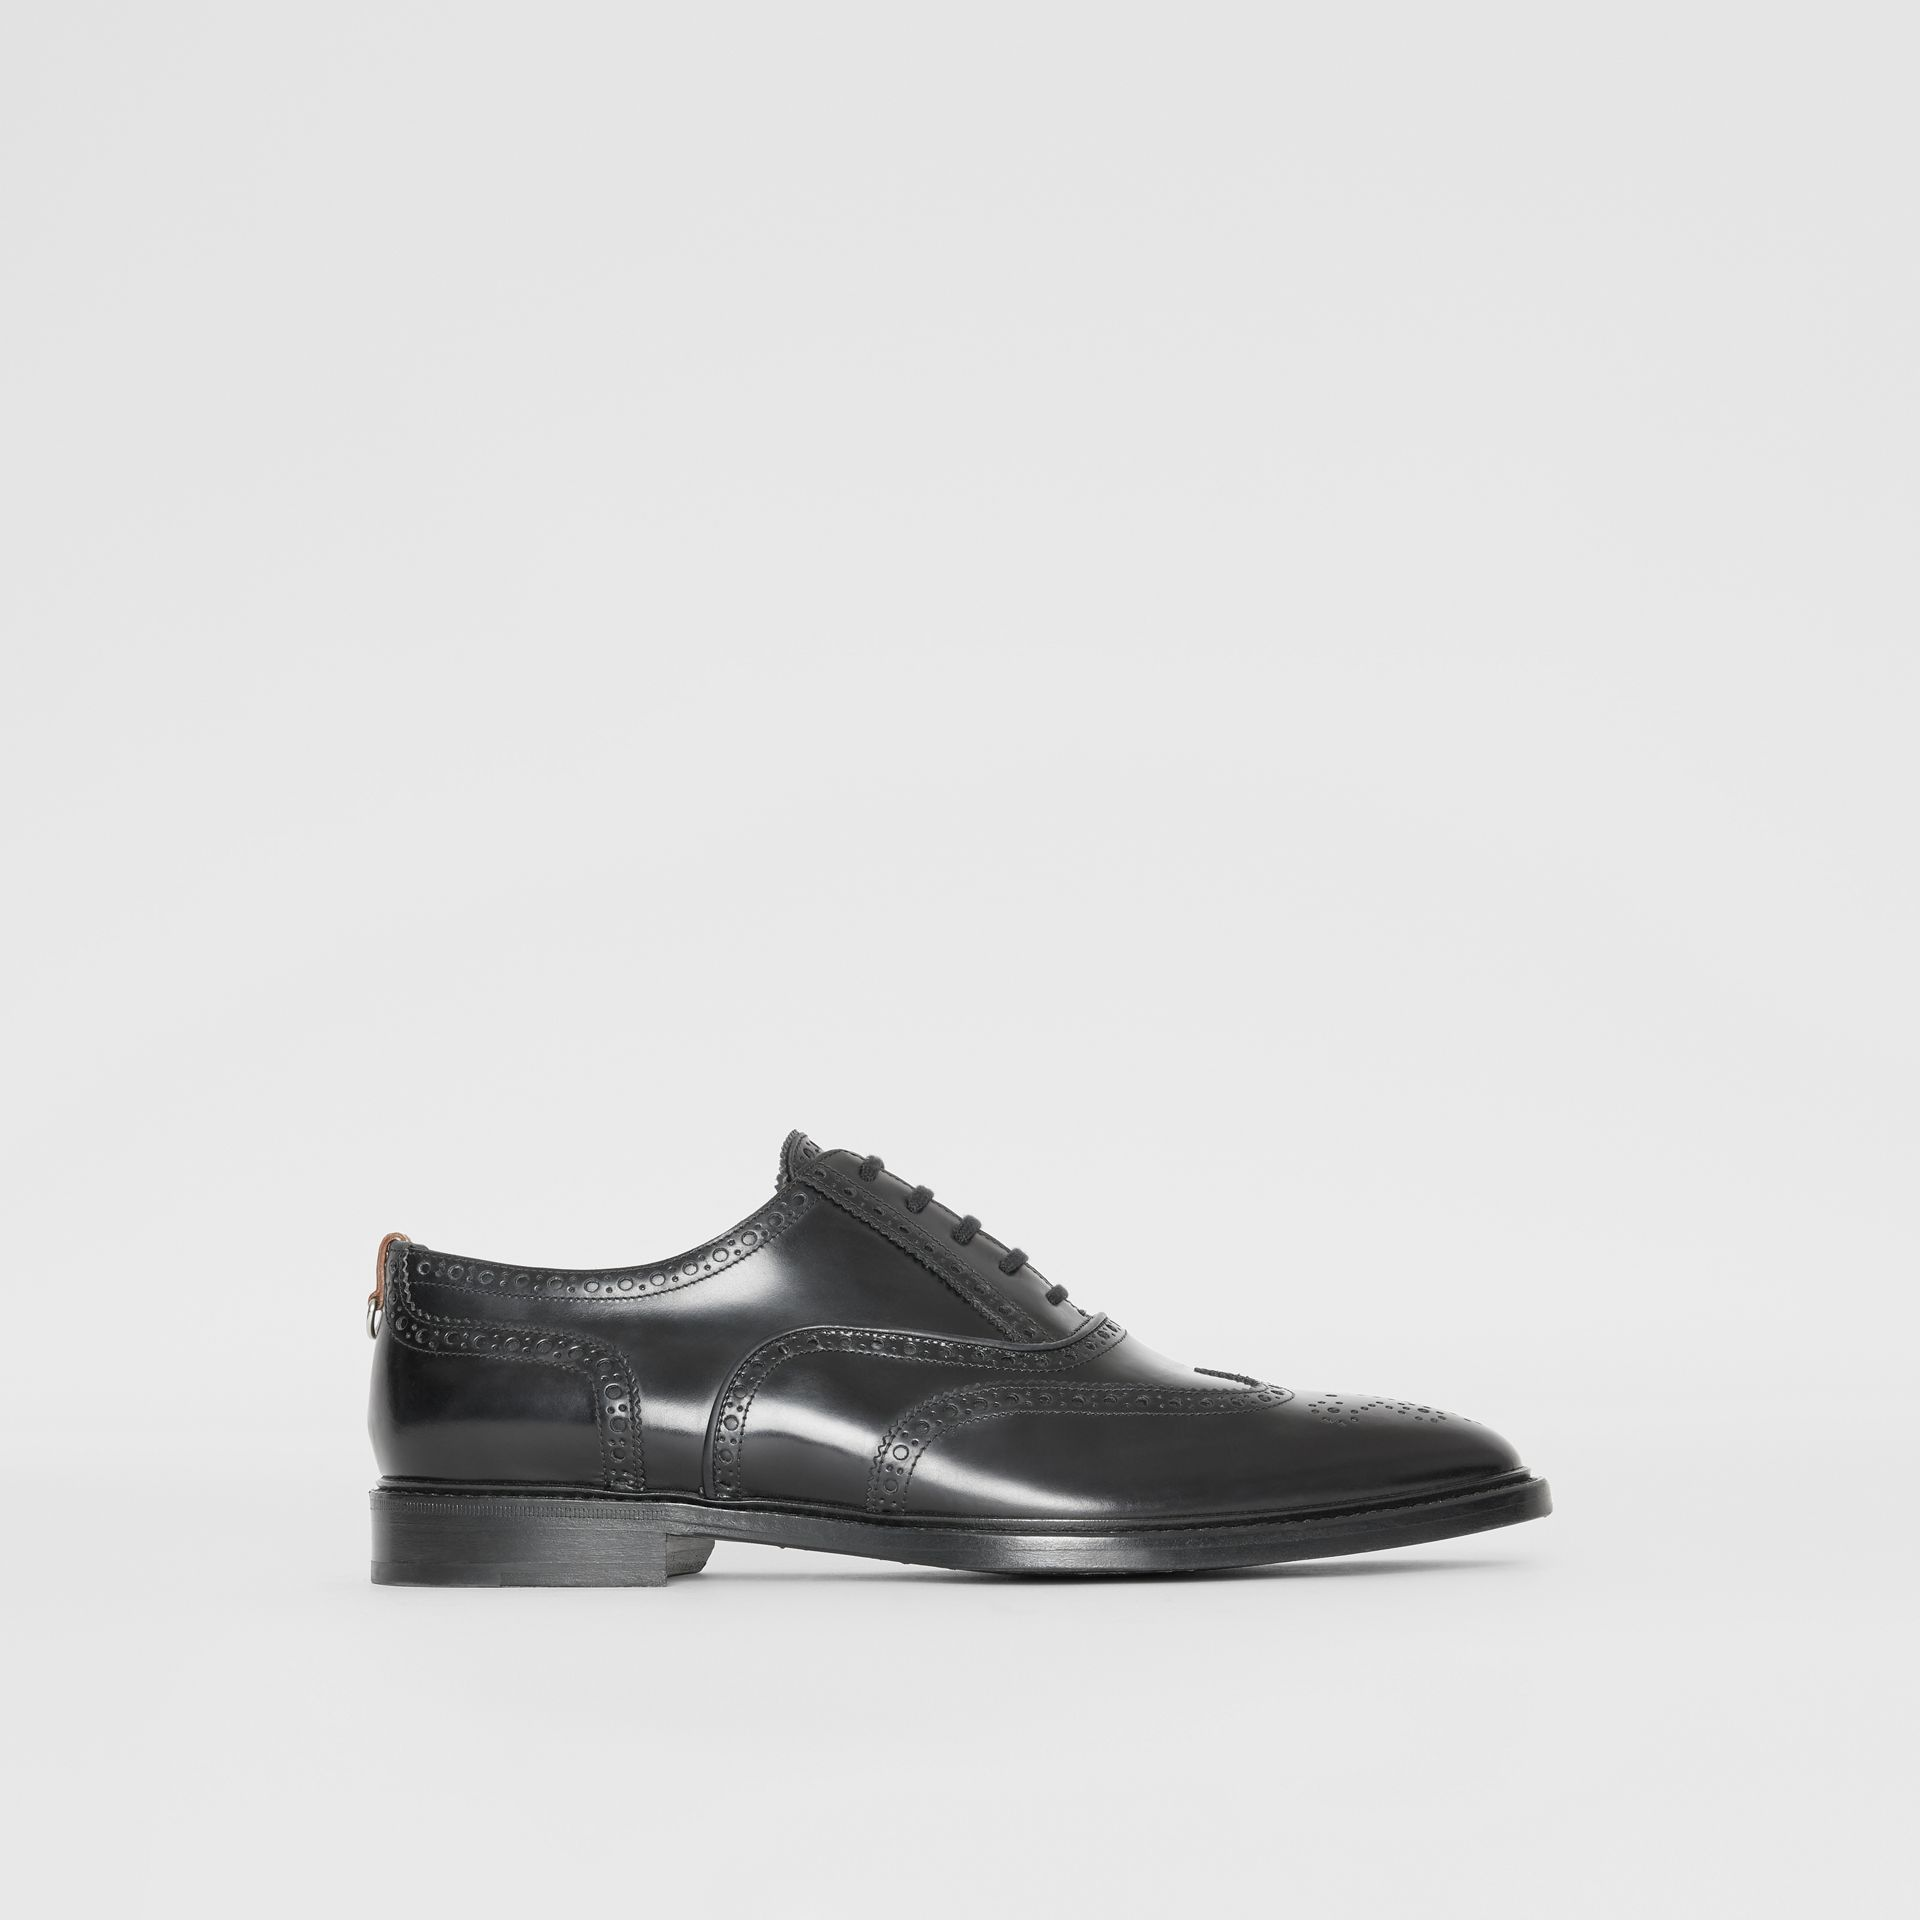 Leather Oxford Brogues in Black | Burberry - gallery image 4